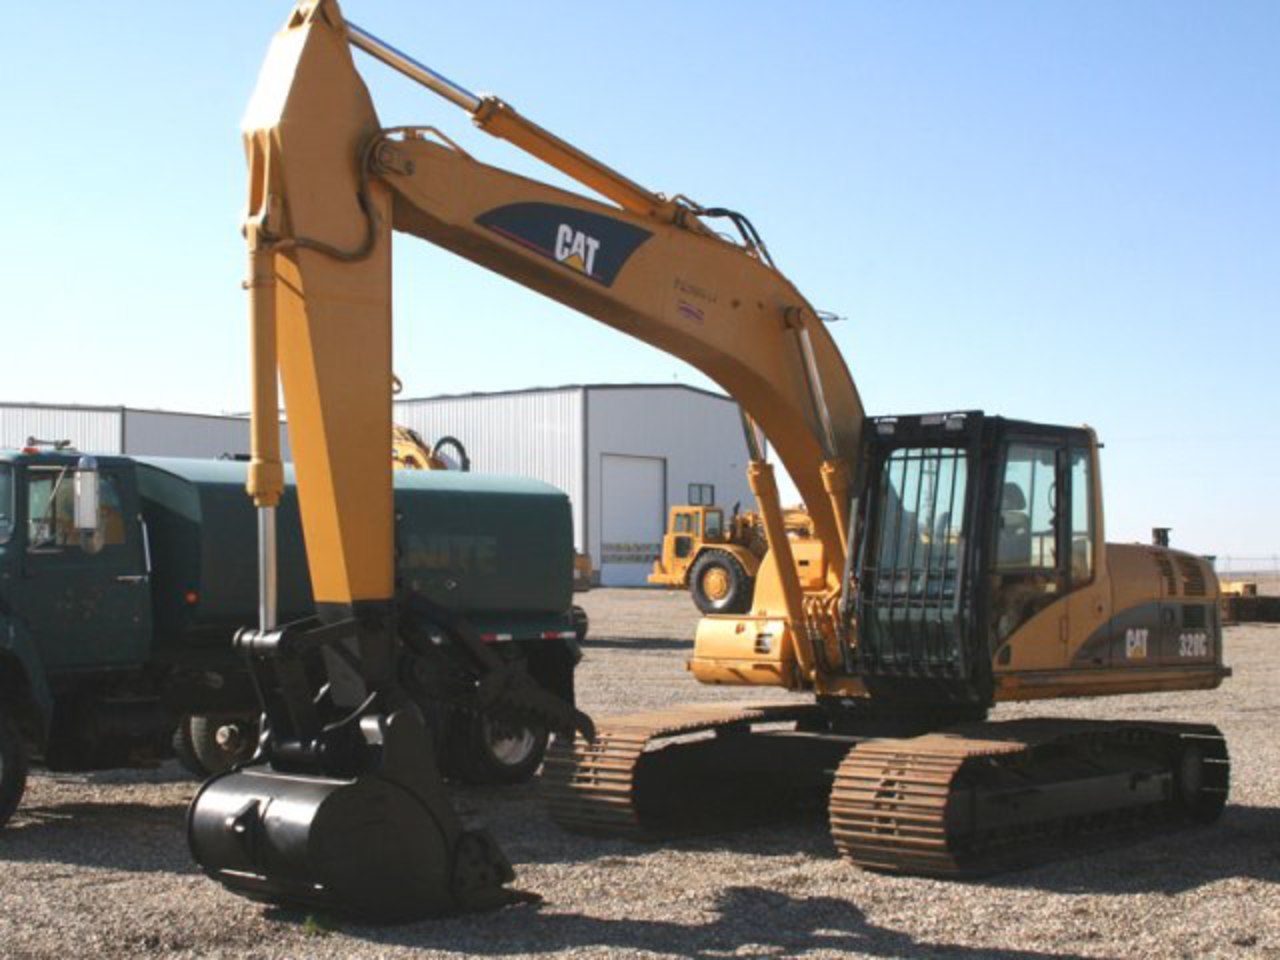 Caterpillar 320 photo 9 complete collection of photos of the